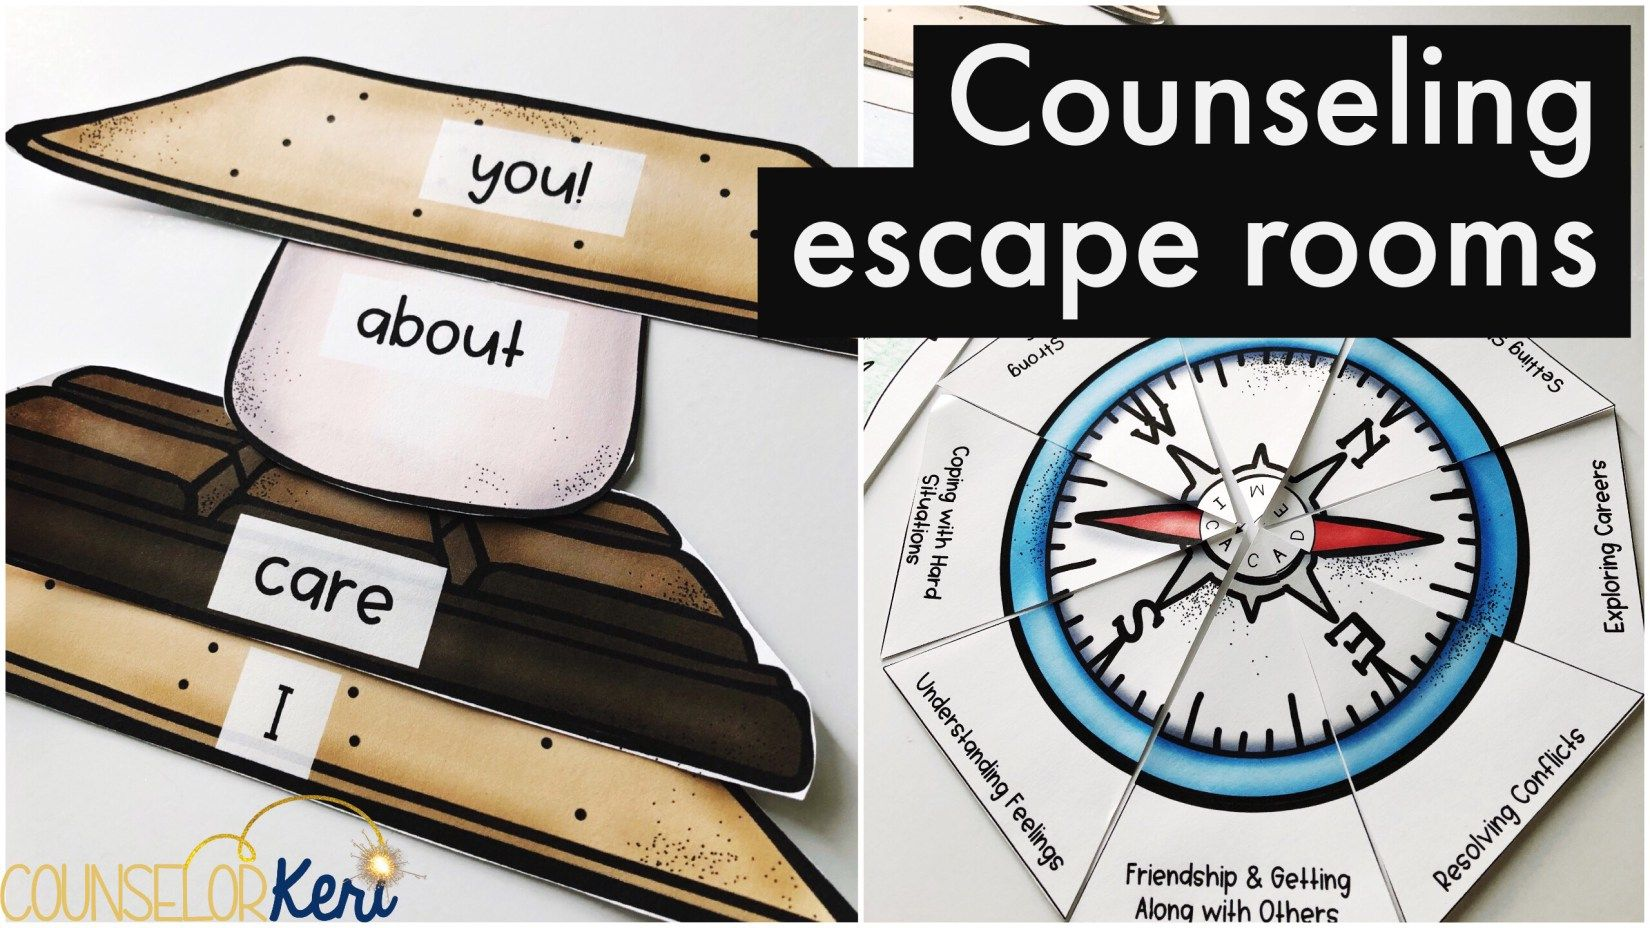 What S The Deal With Counseling Escape Rooms Anyway